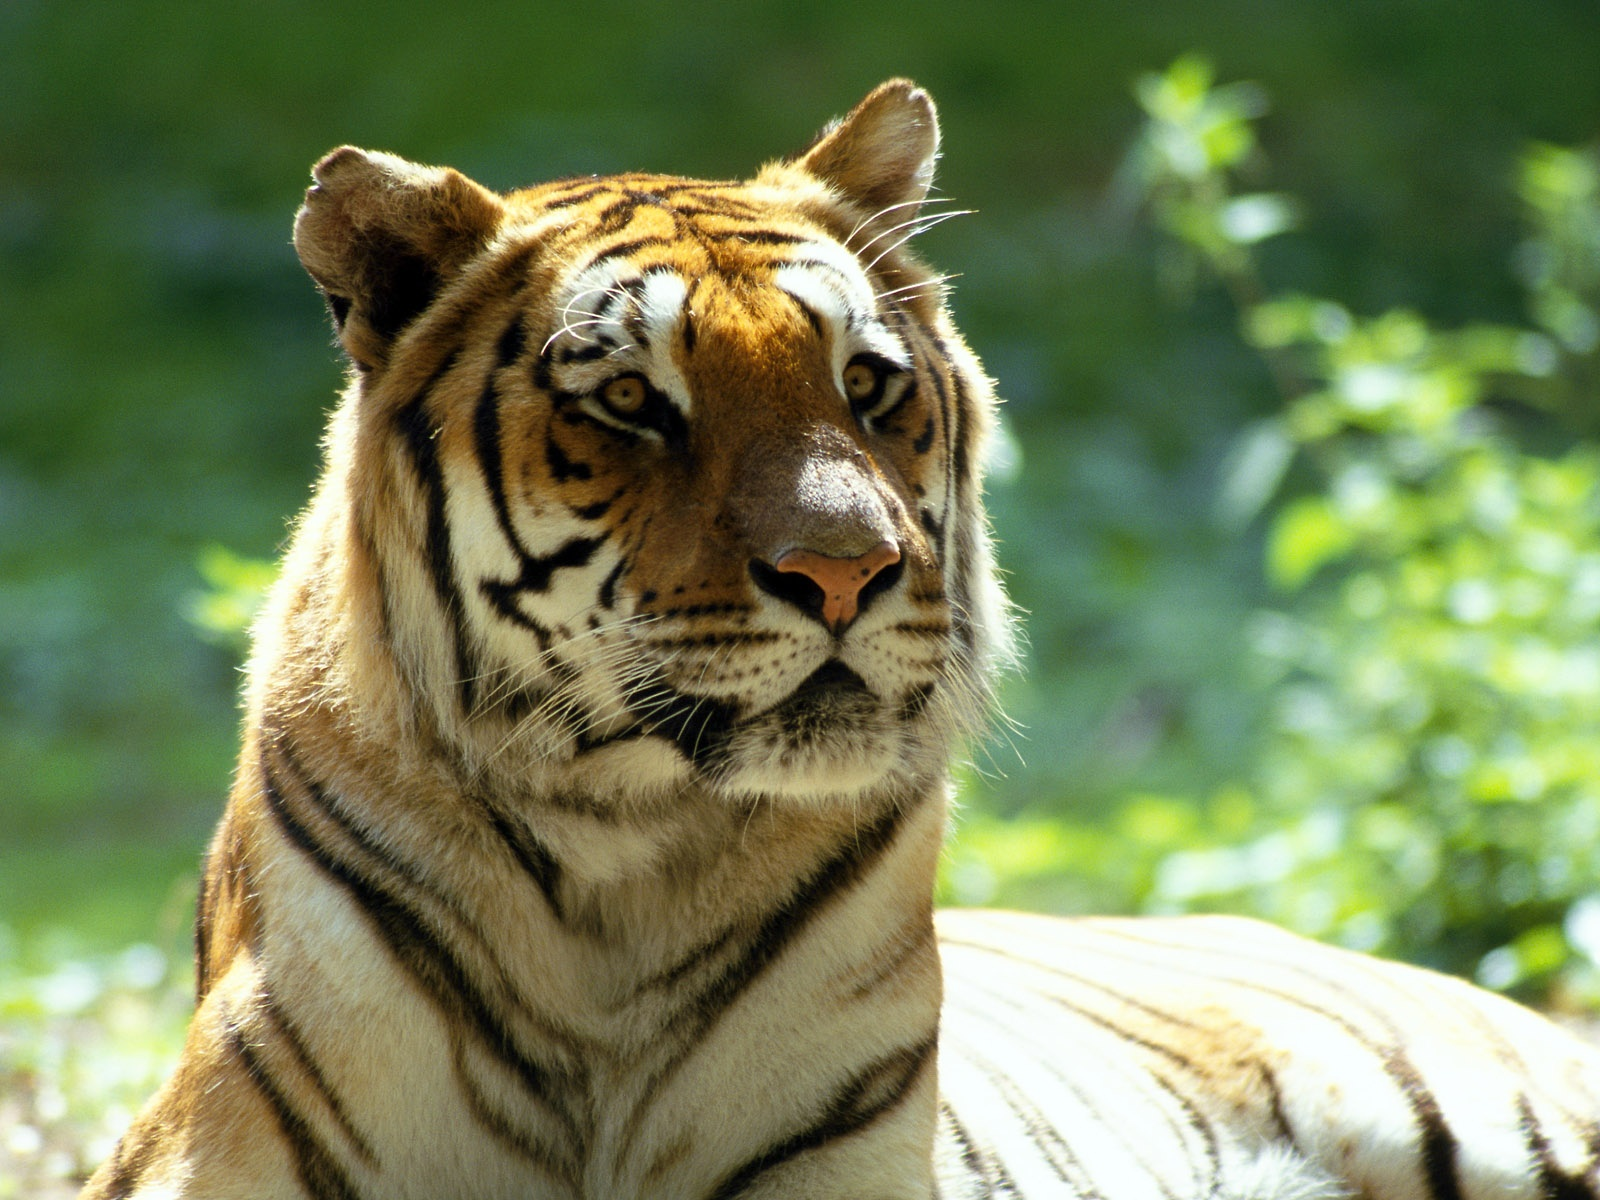 Cool Animal Tiger HD Wallpaper For Desktop for download iPhone 5 4 1600x1200